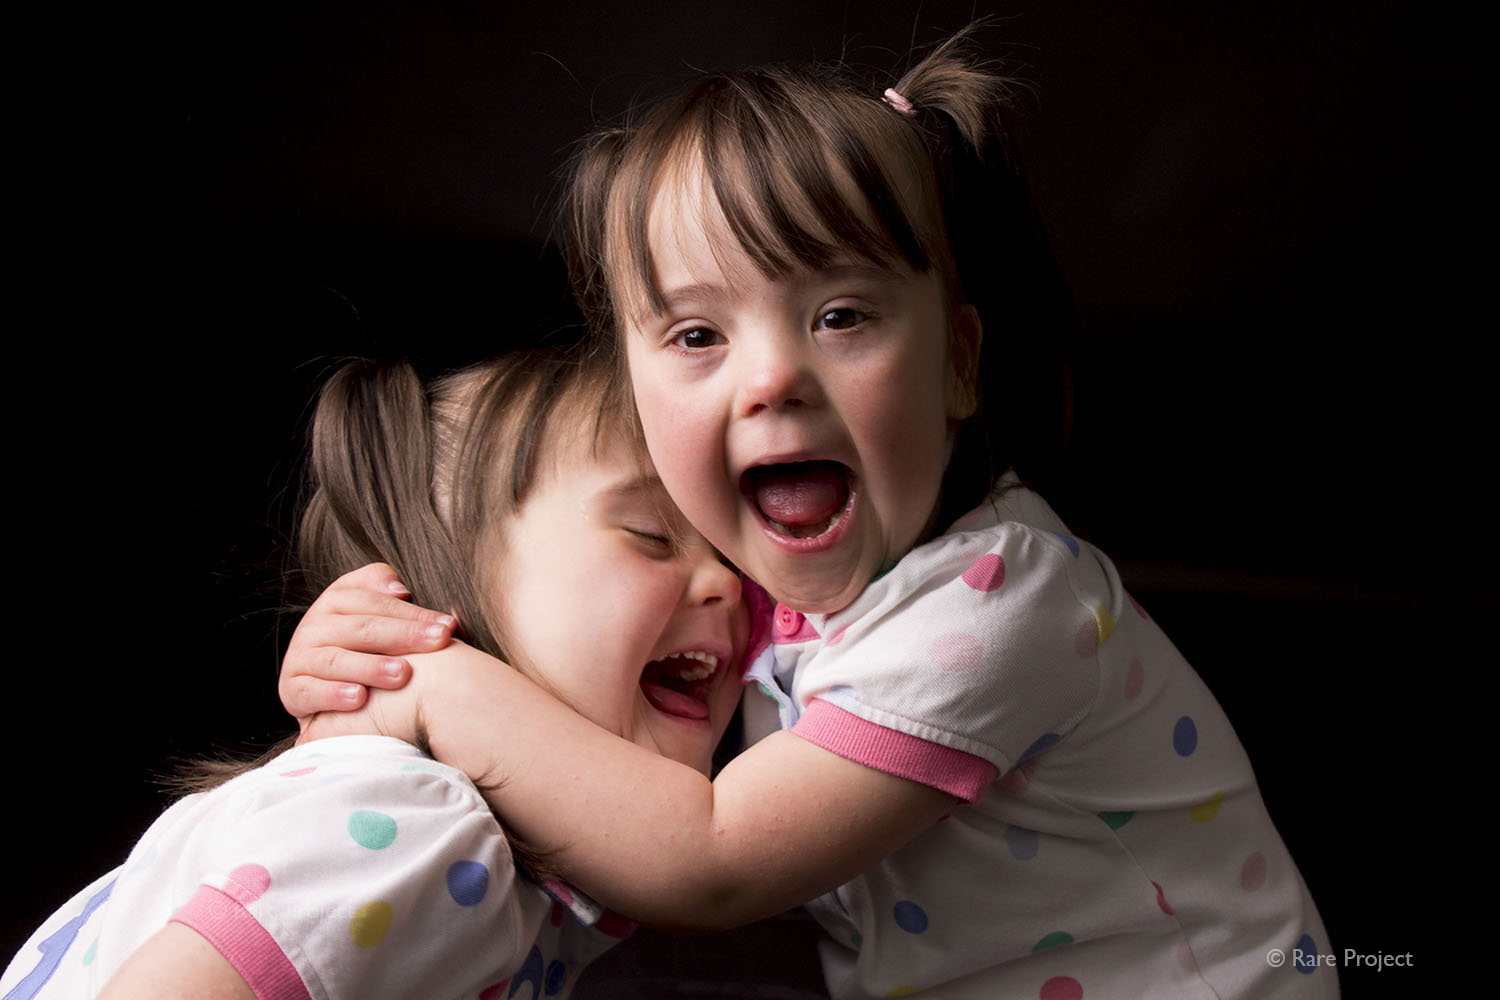 Twins with down's syndrome